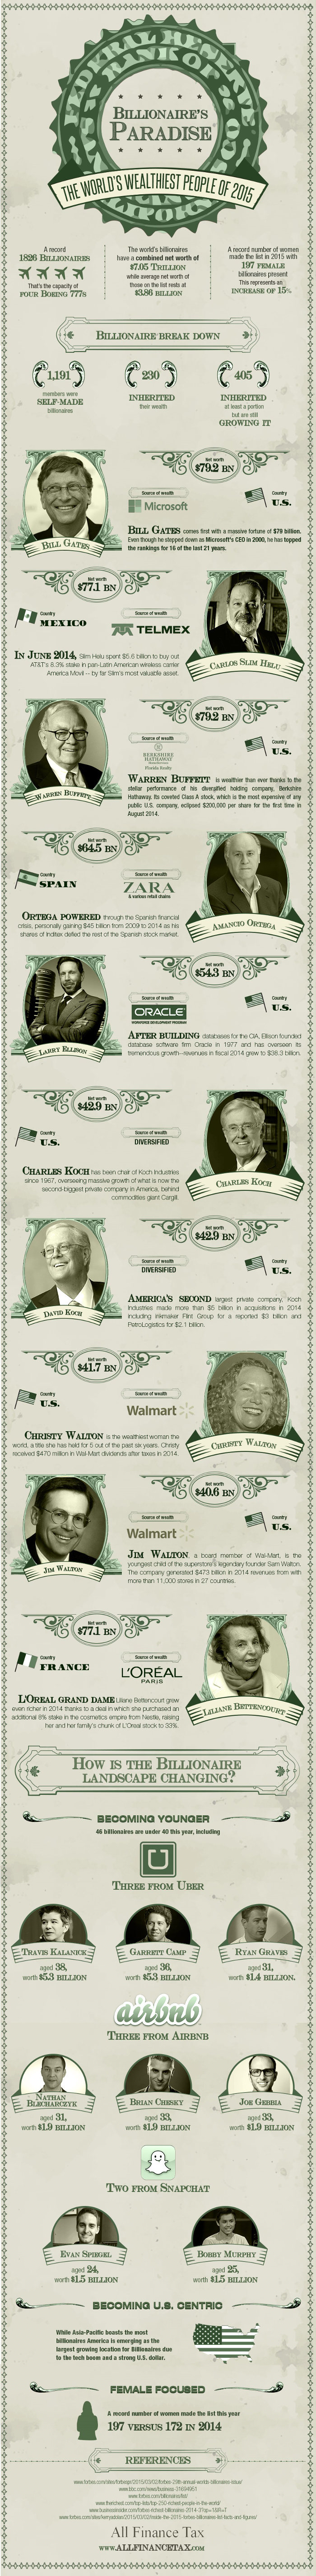 Billionaire's paradise - wealthiest people 2015 infographic